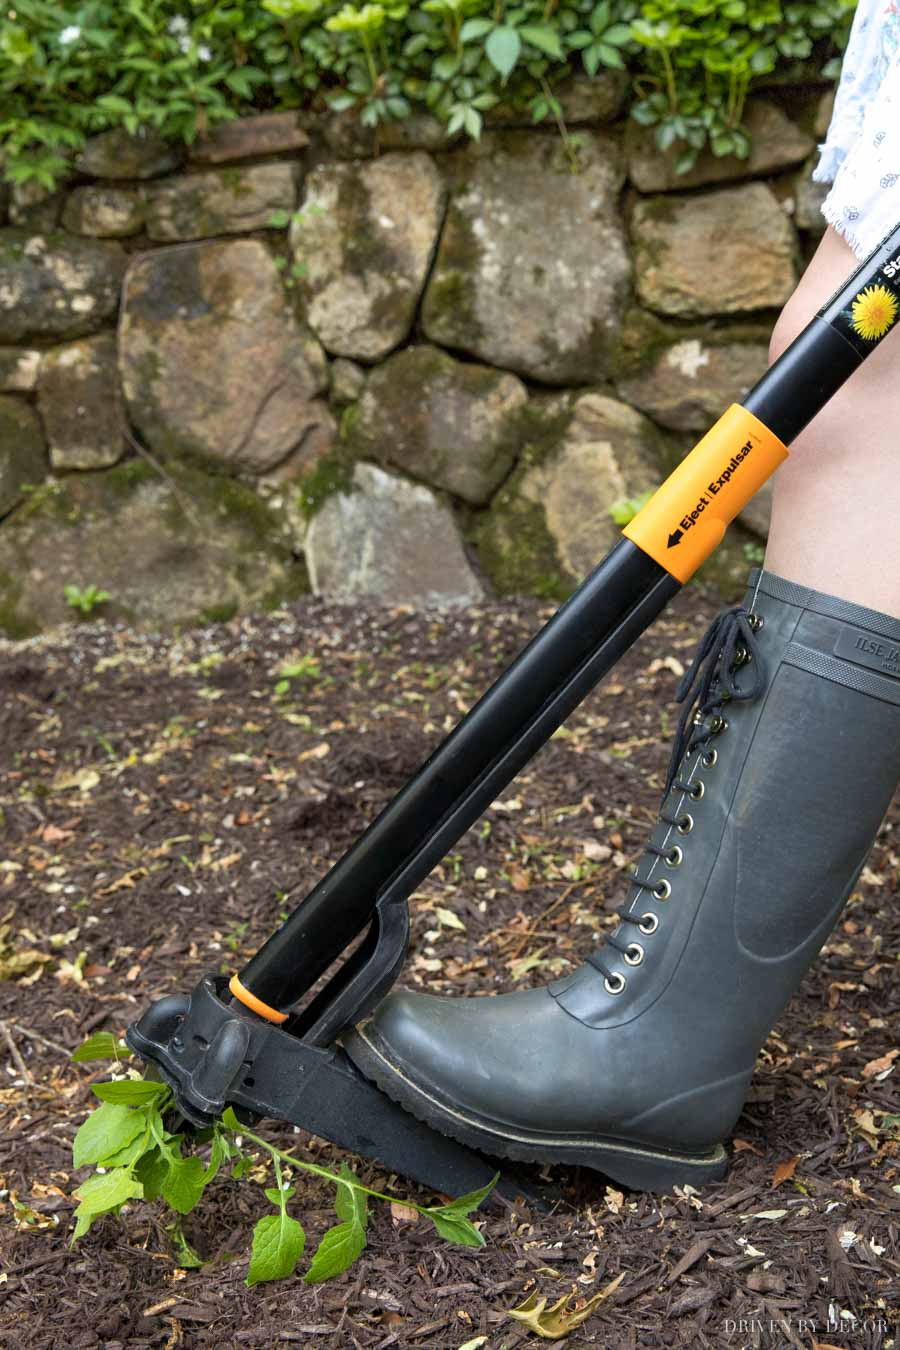 This is the best weeding tool out there! Works so well and saves your back!